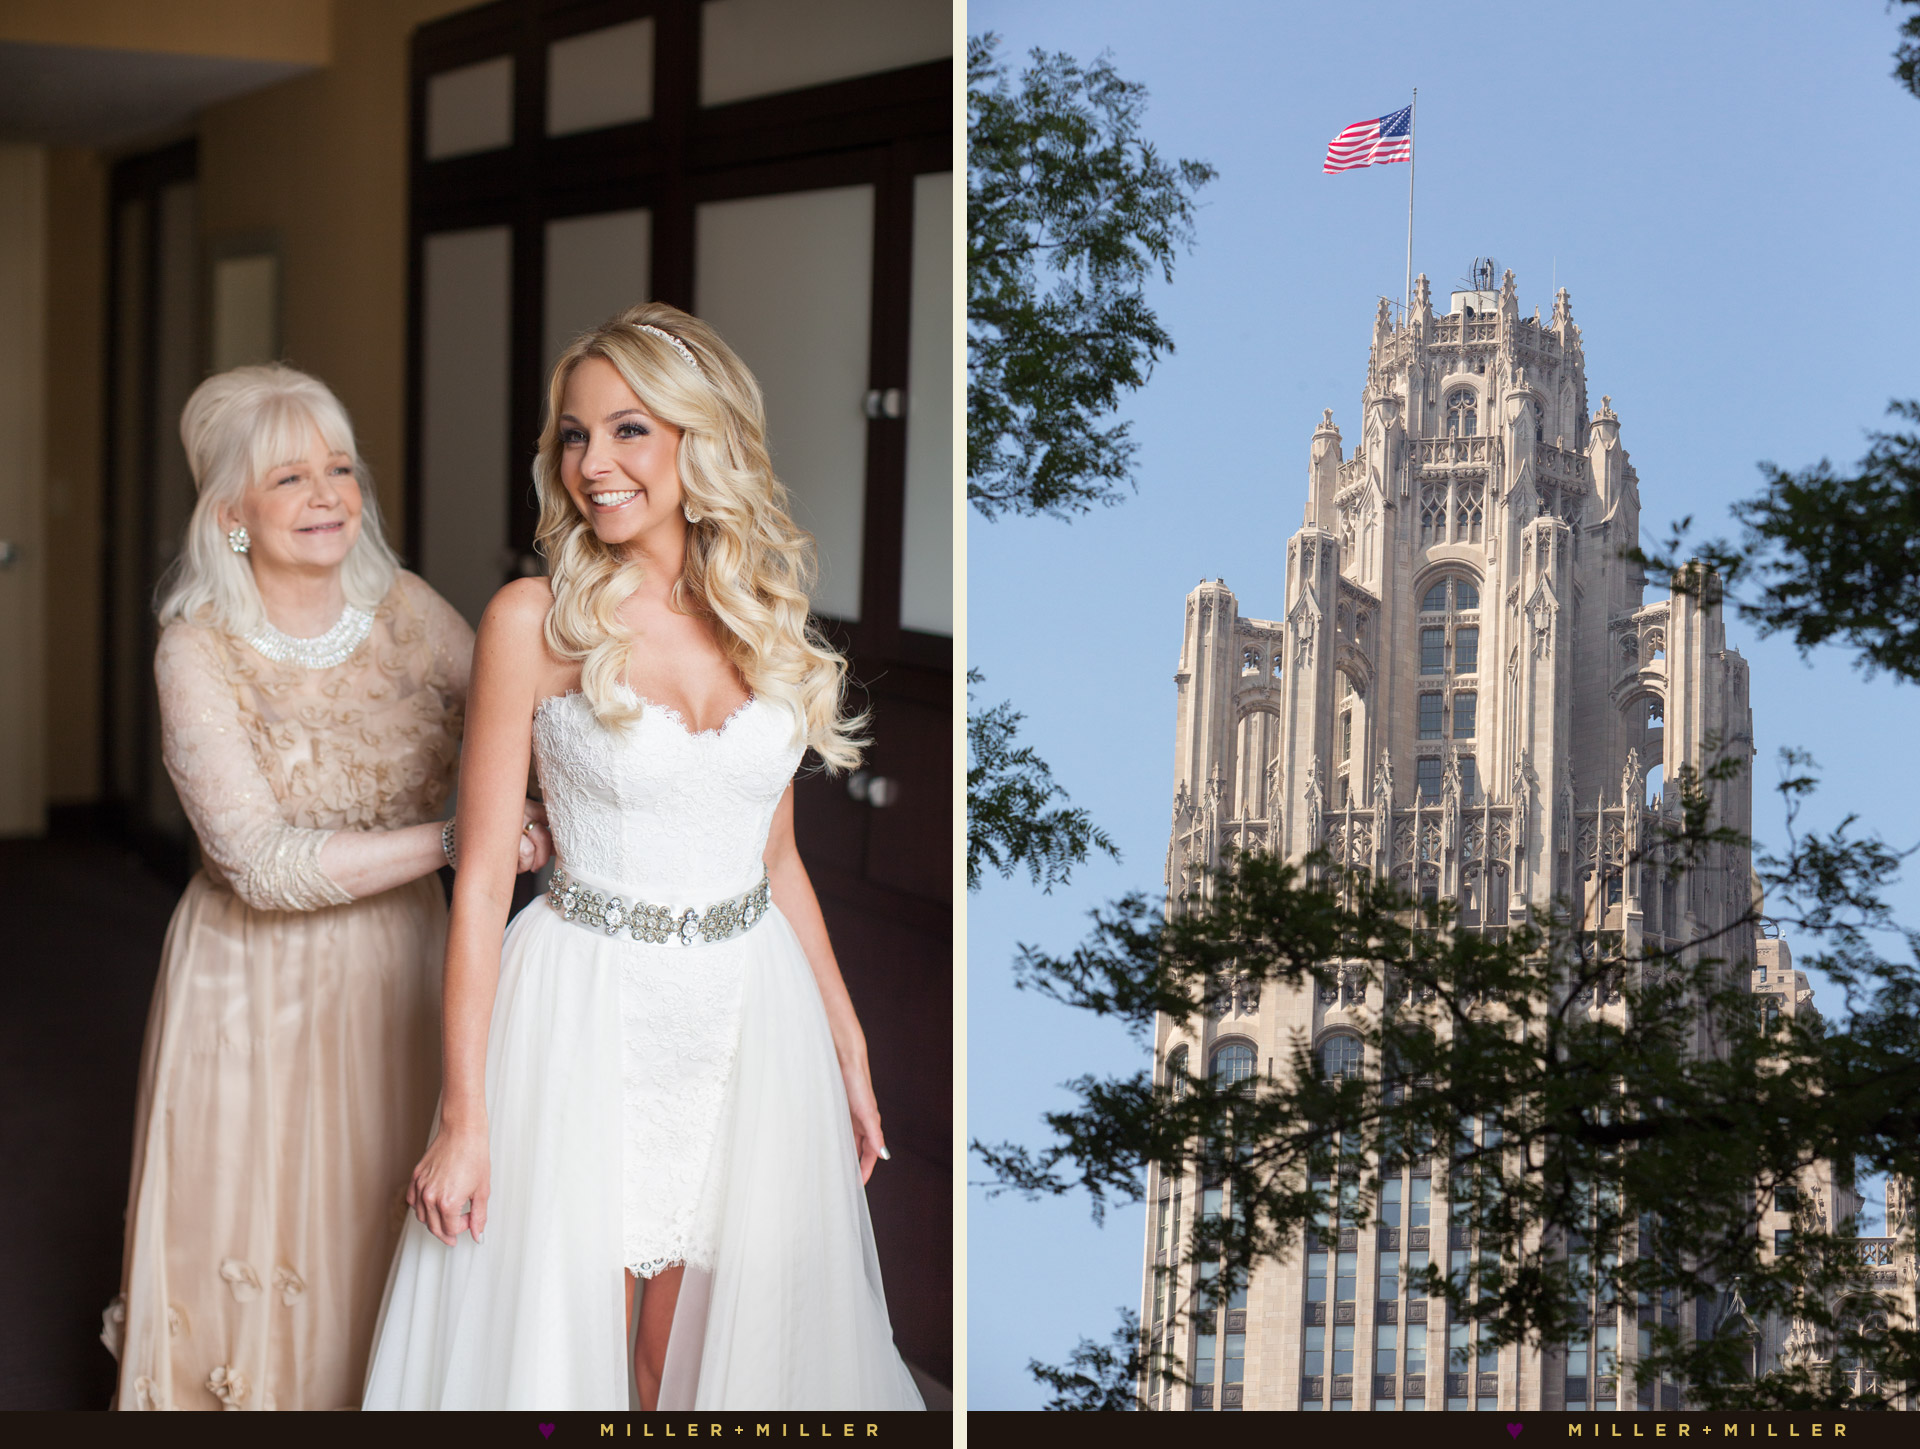 Tribune Tower Crown Chicago wedding photography